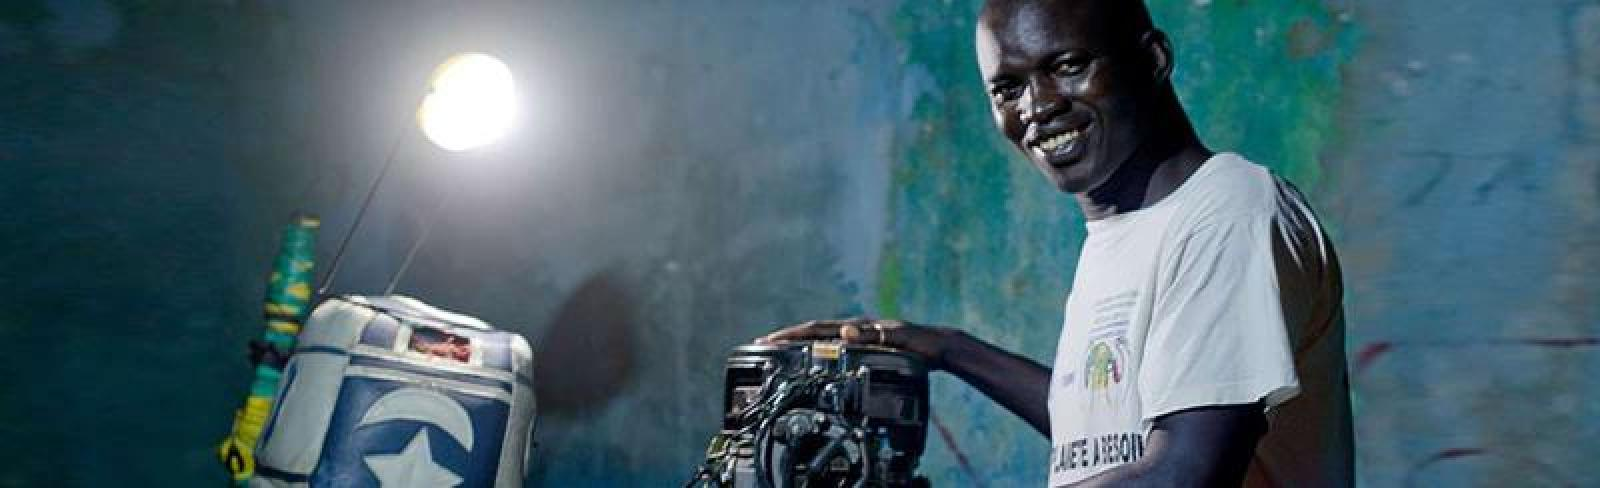 Experiencing Solar Products in the Dark Sheds Light on their Power